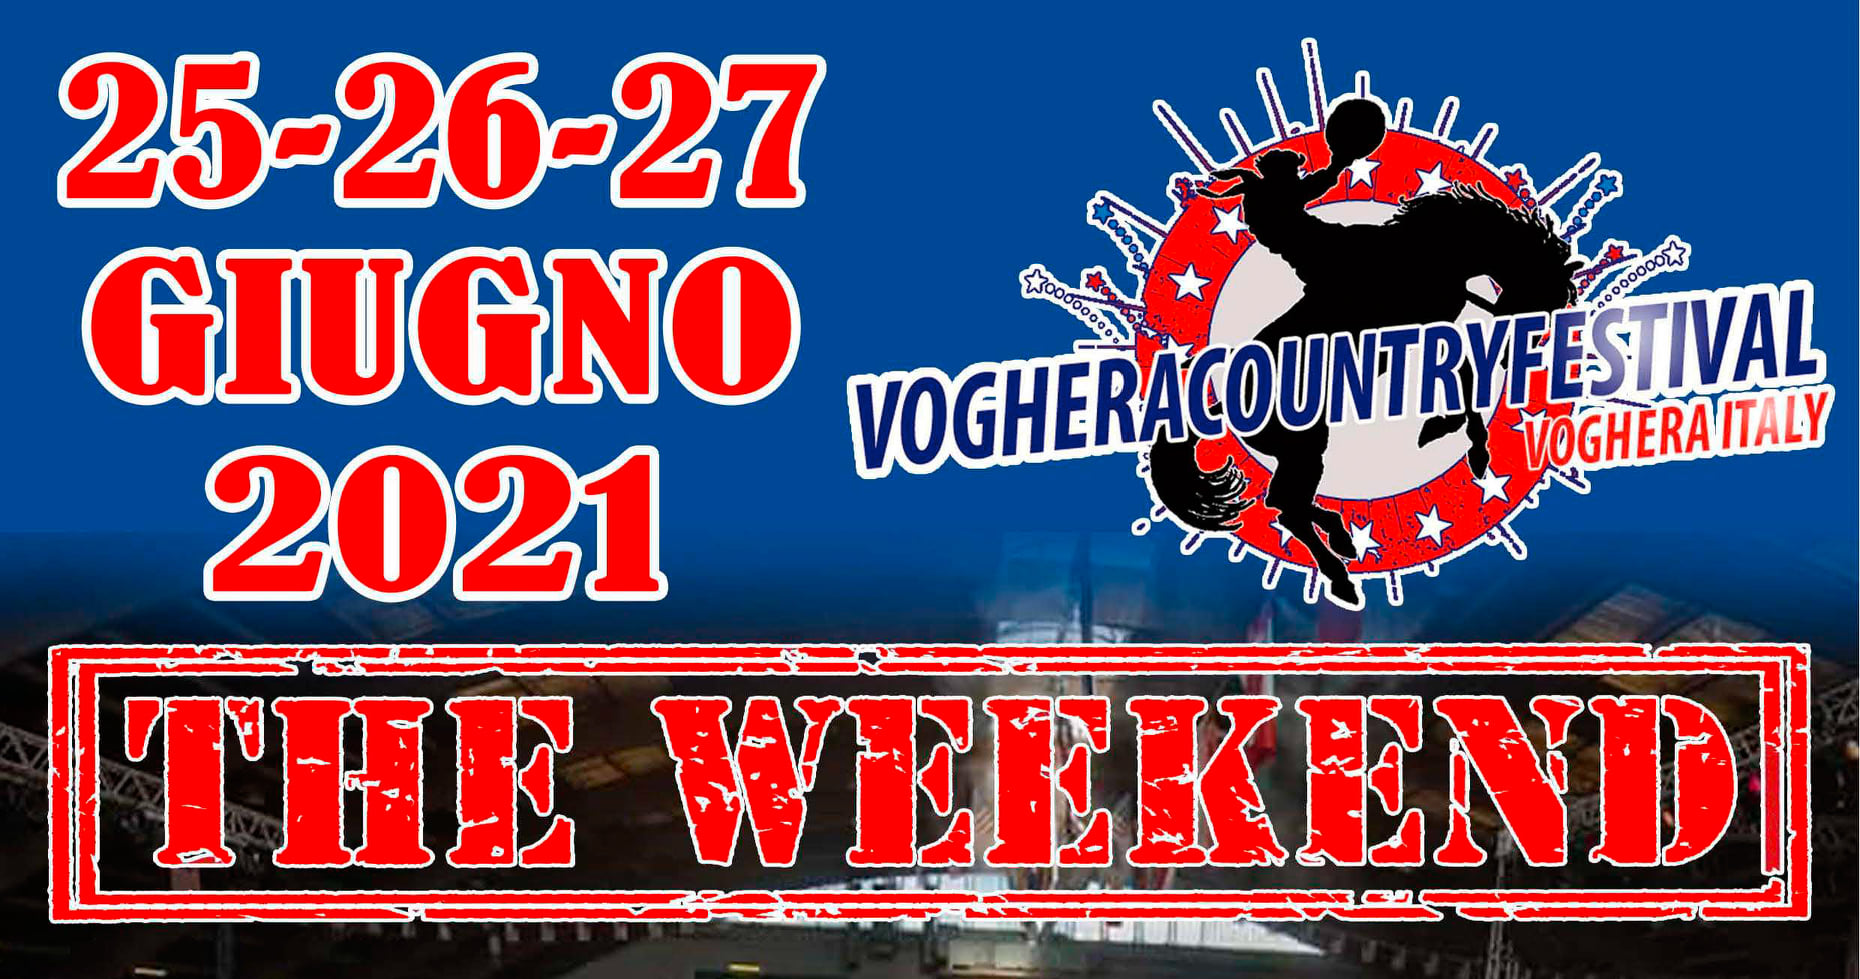 VOGHERA COUNTRY FESTIVAL 2021 - THE WEEKEND